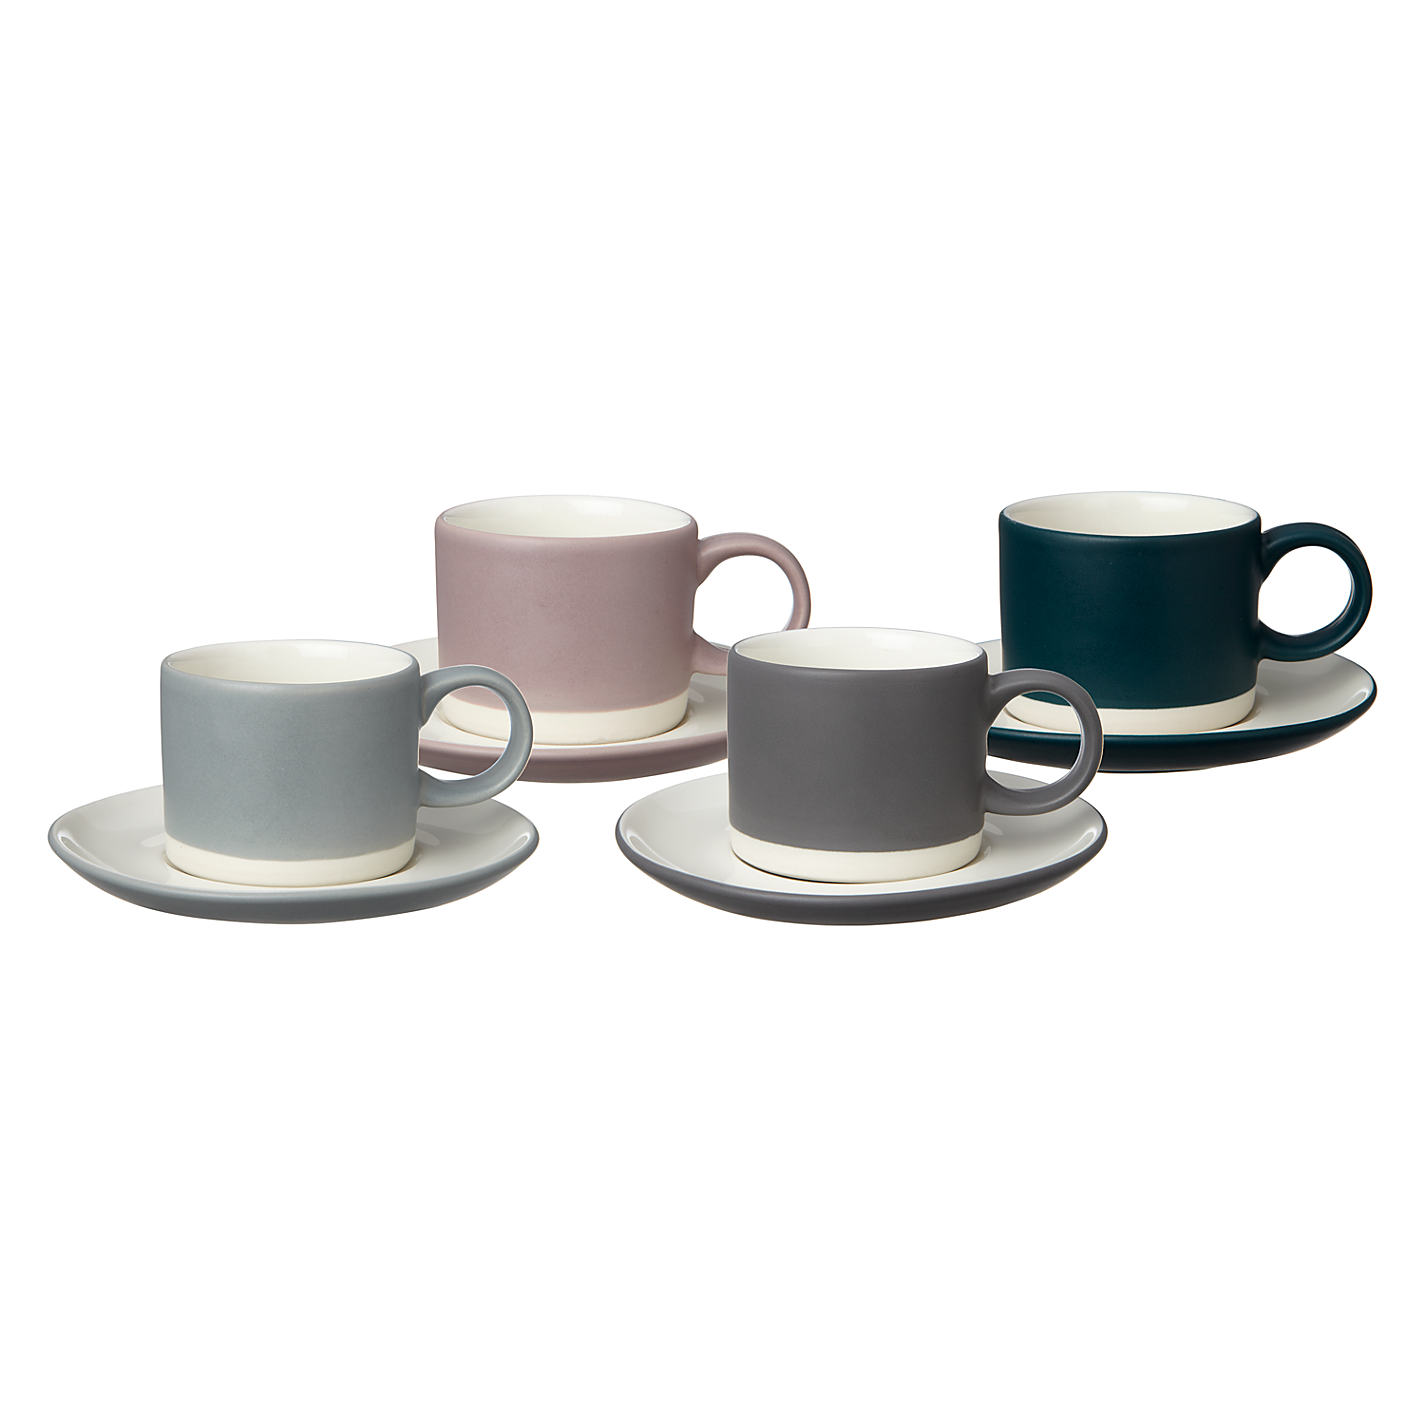 Glass espresso coffee cups uk - Buy John Lewis Croft Collection Espresso Cup Saucer Set Of 4 Online At Johnlewis